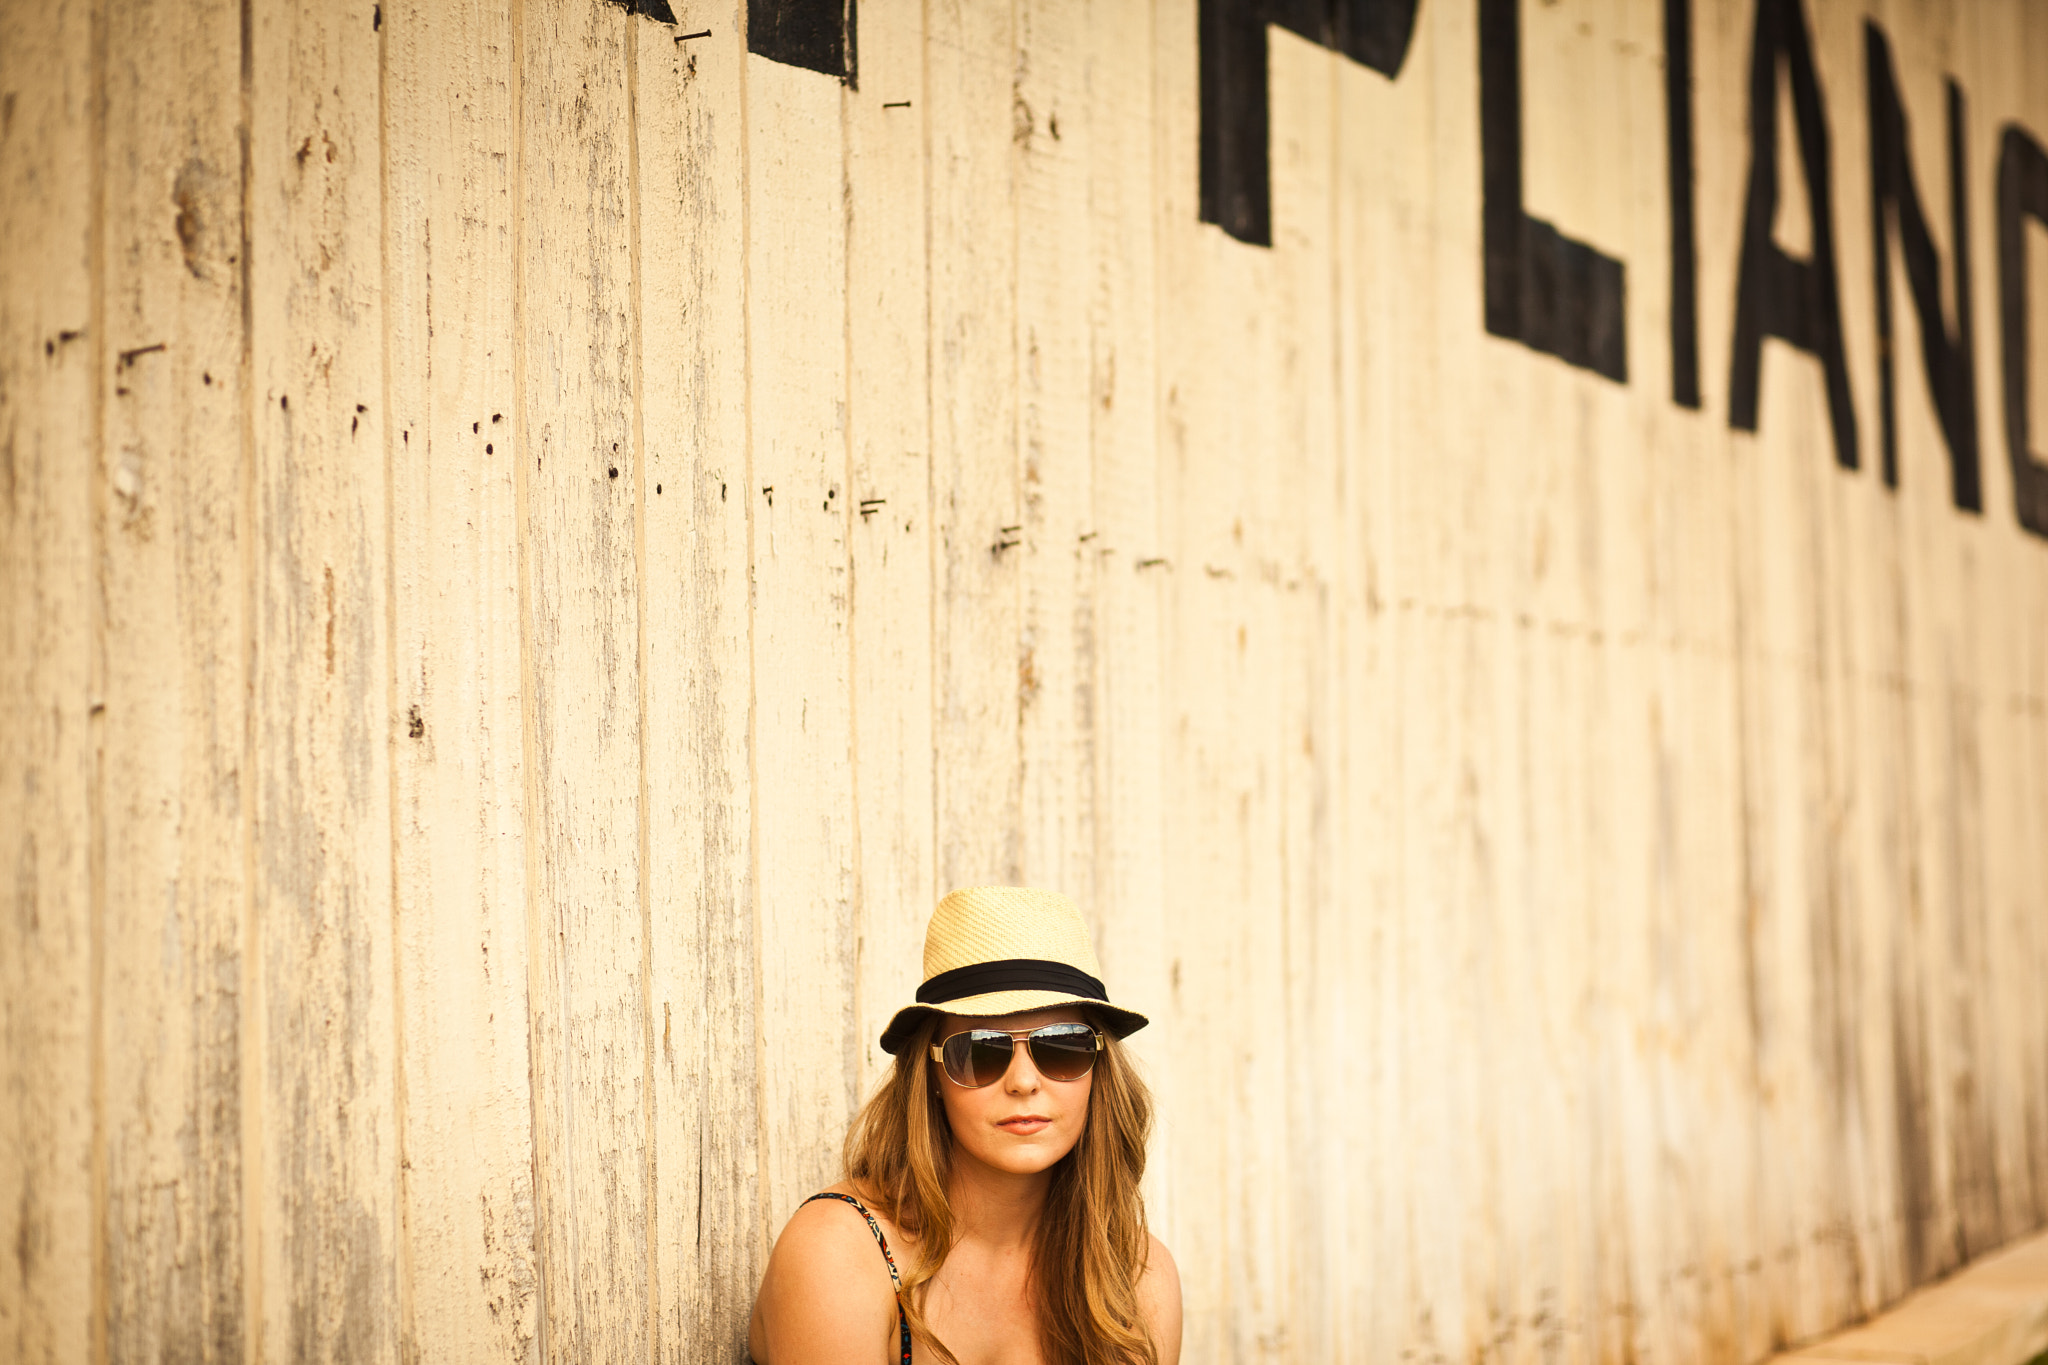 Photograph Carley by Grant Daniels on 500px